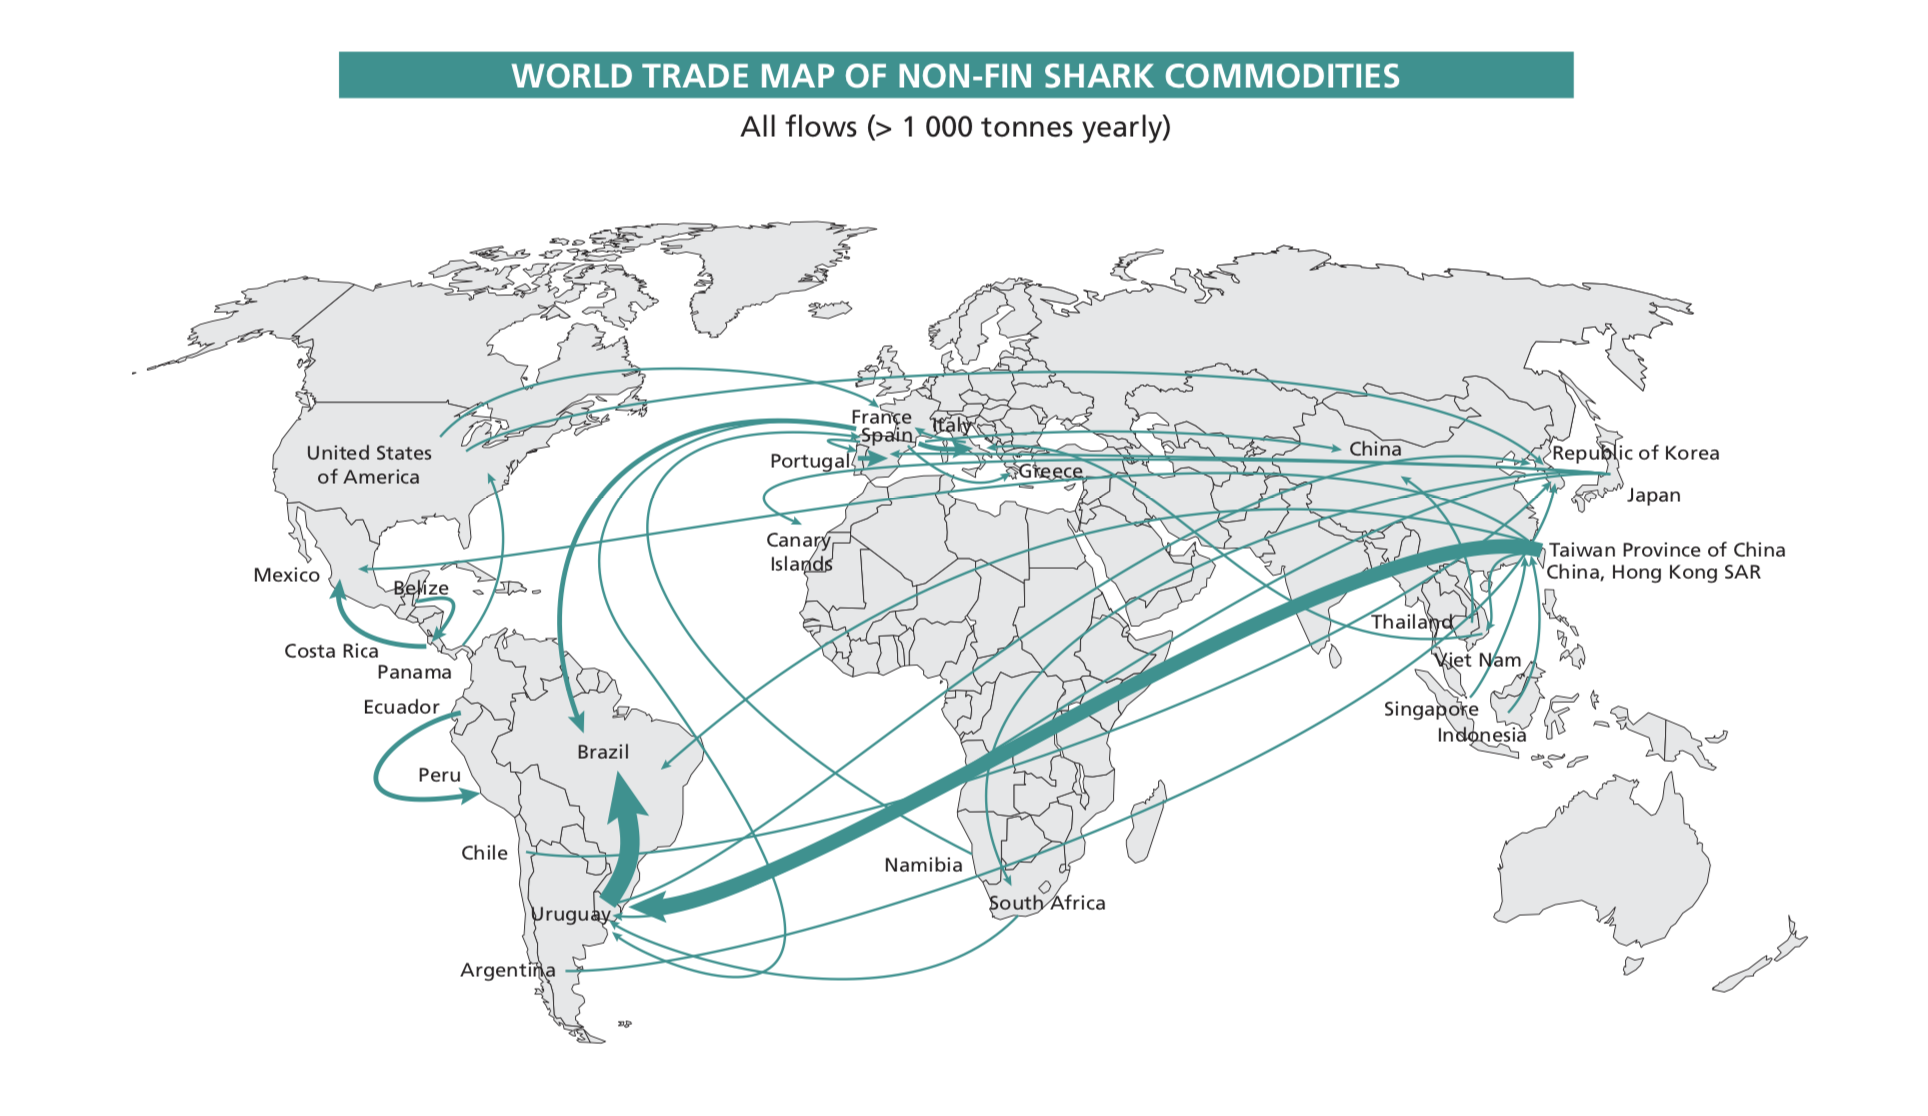 Estimates based on FAO statistics of global trade flows of shark products (not including fins), 2008–2011.